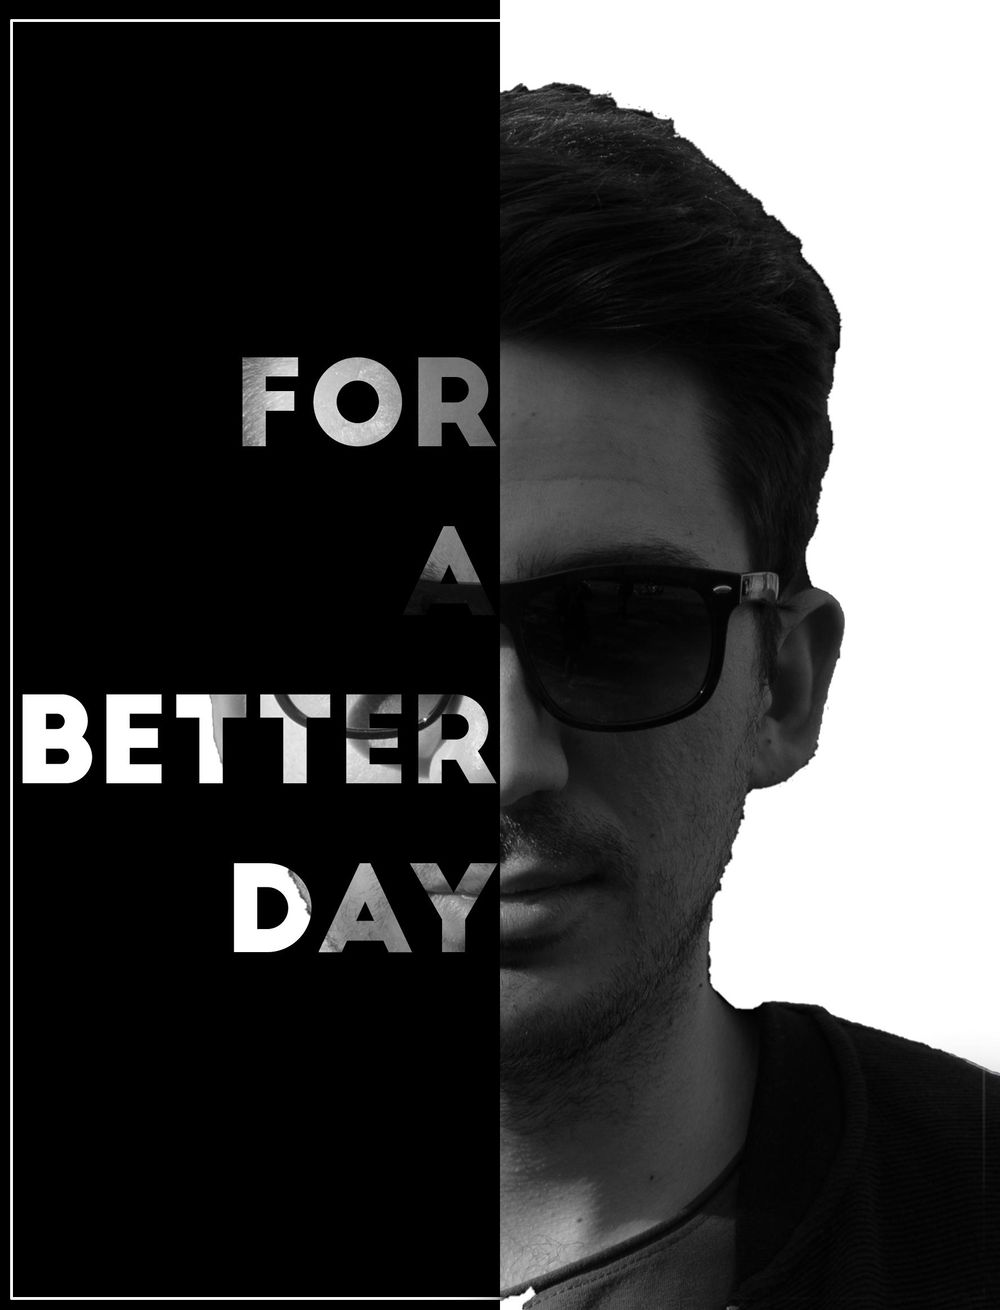 For A Better Day - image 1 - student project